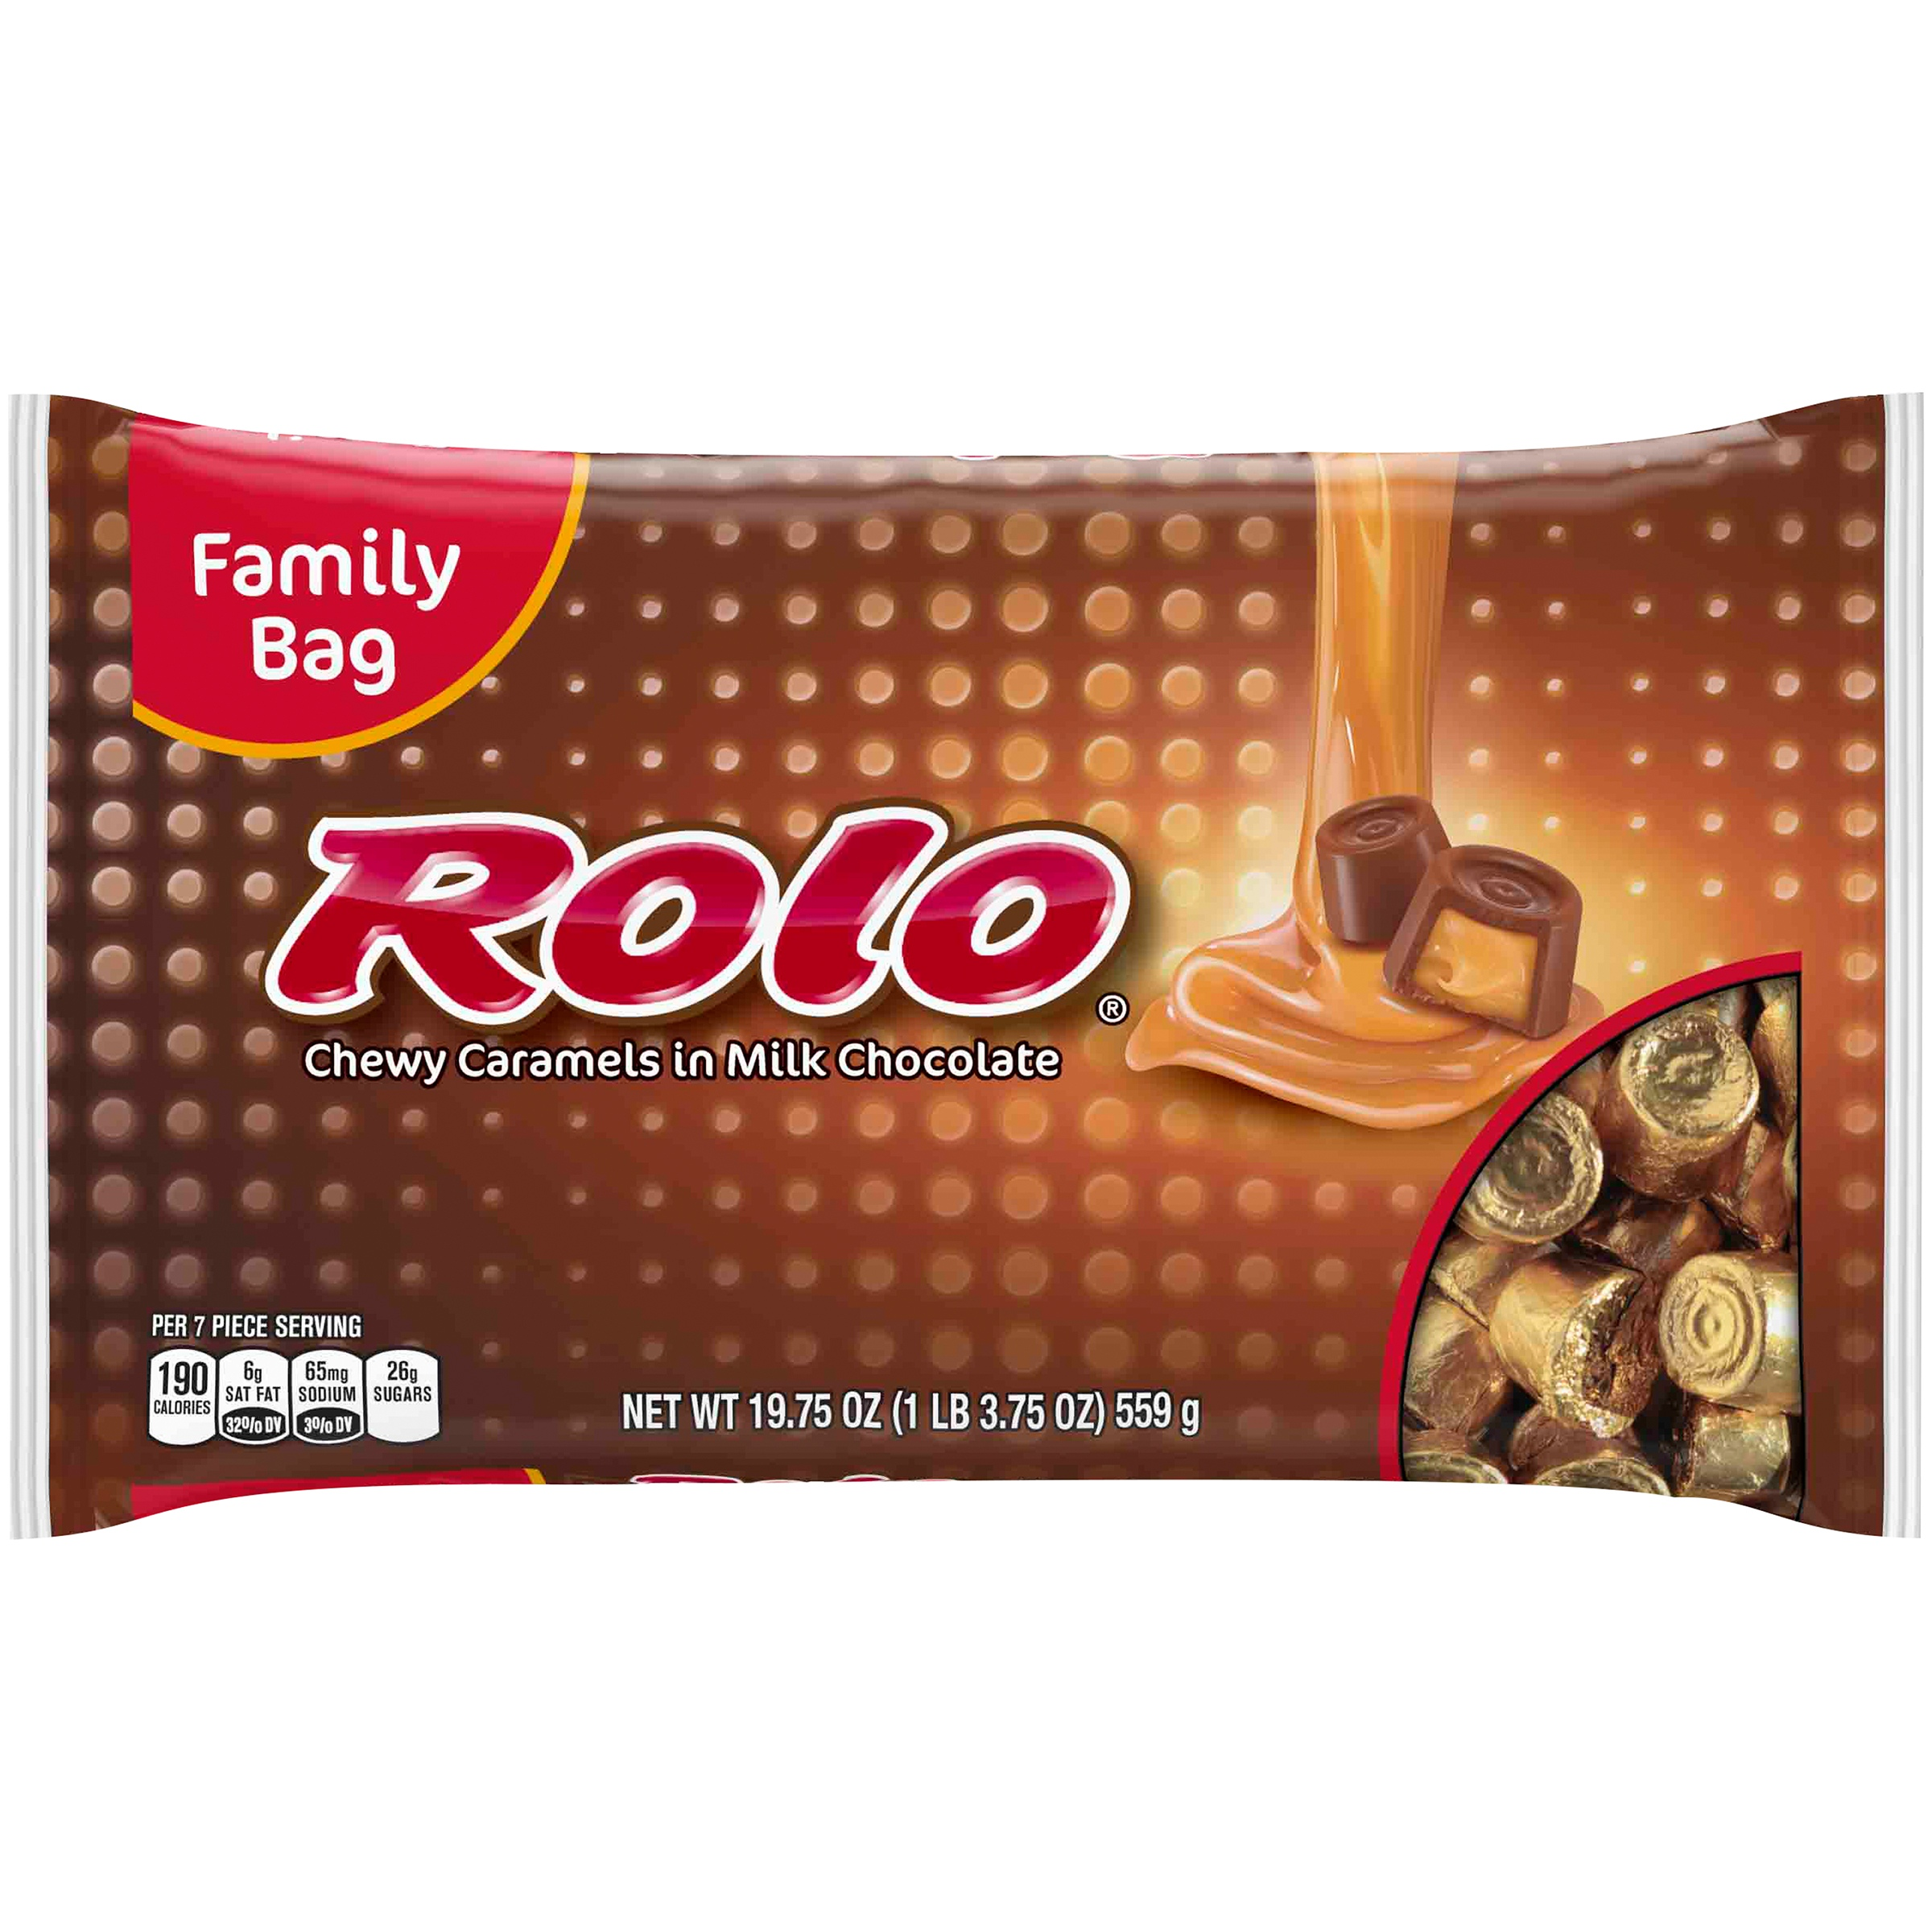 Rolo Chewy Caramels Milk Chocolate Candy, 19.75 oz by The Hershey Company